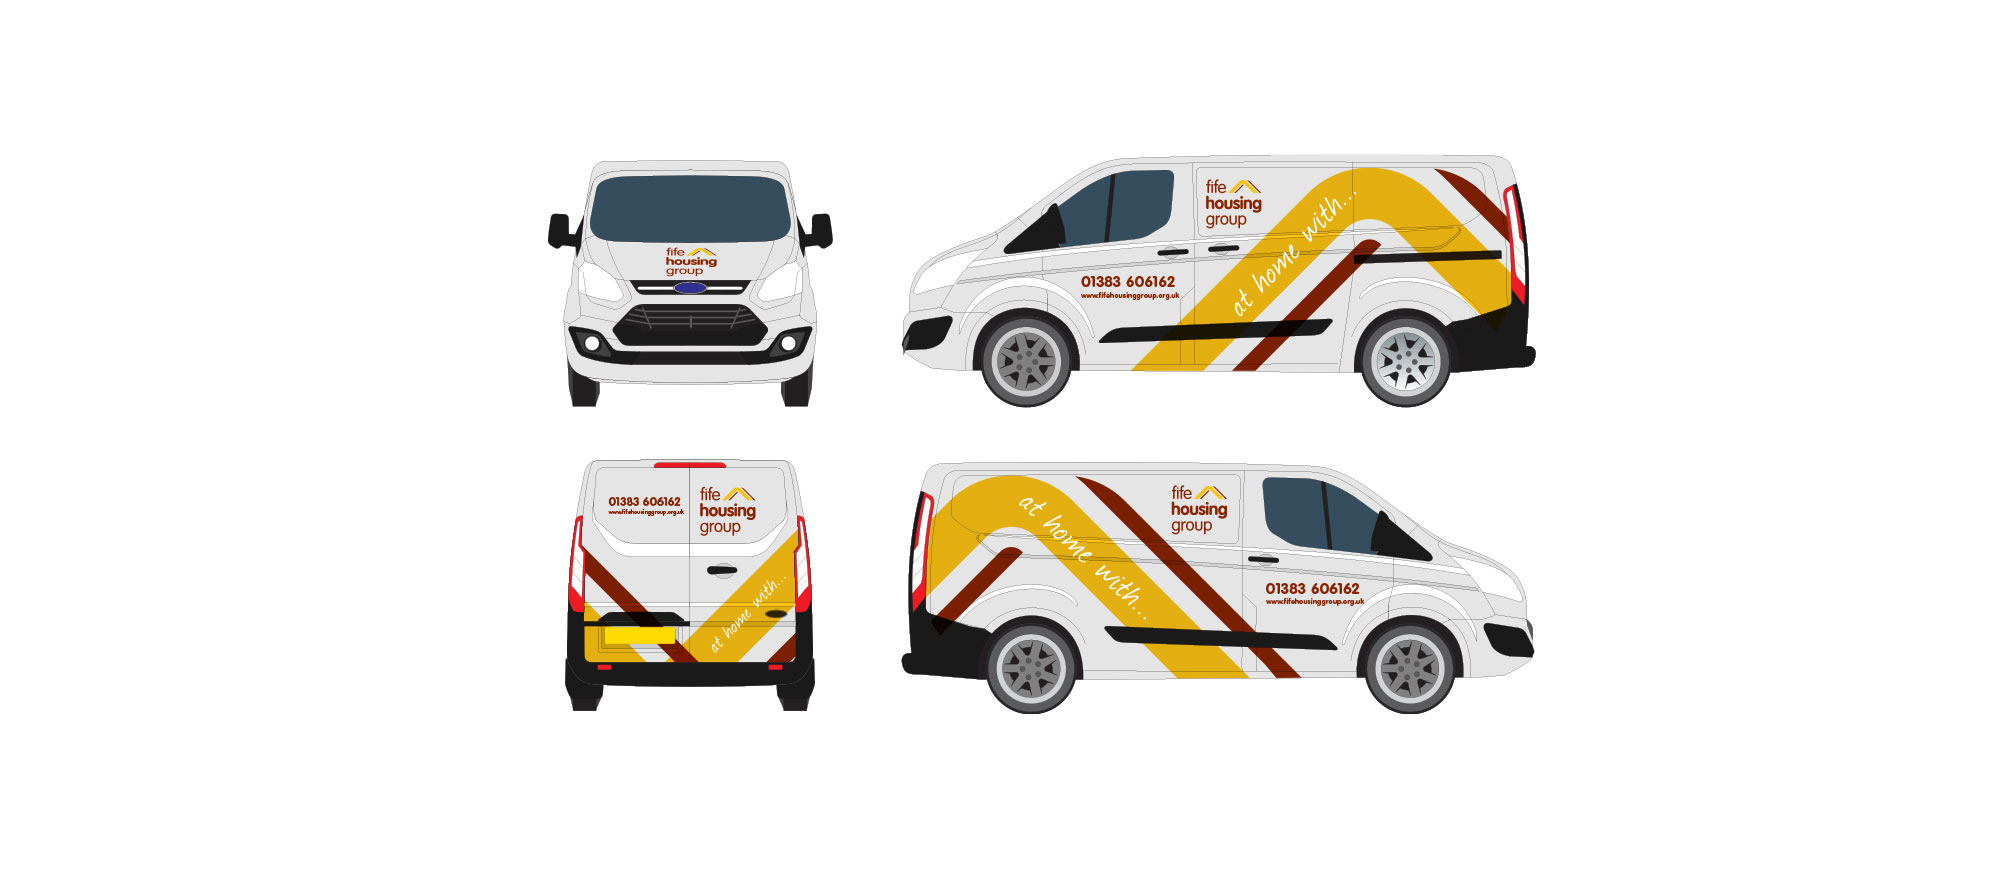 Vehicle Livery Fife Housing Group